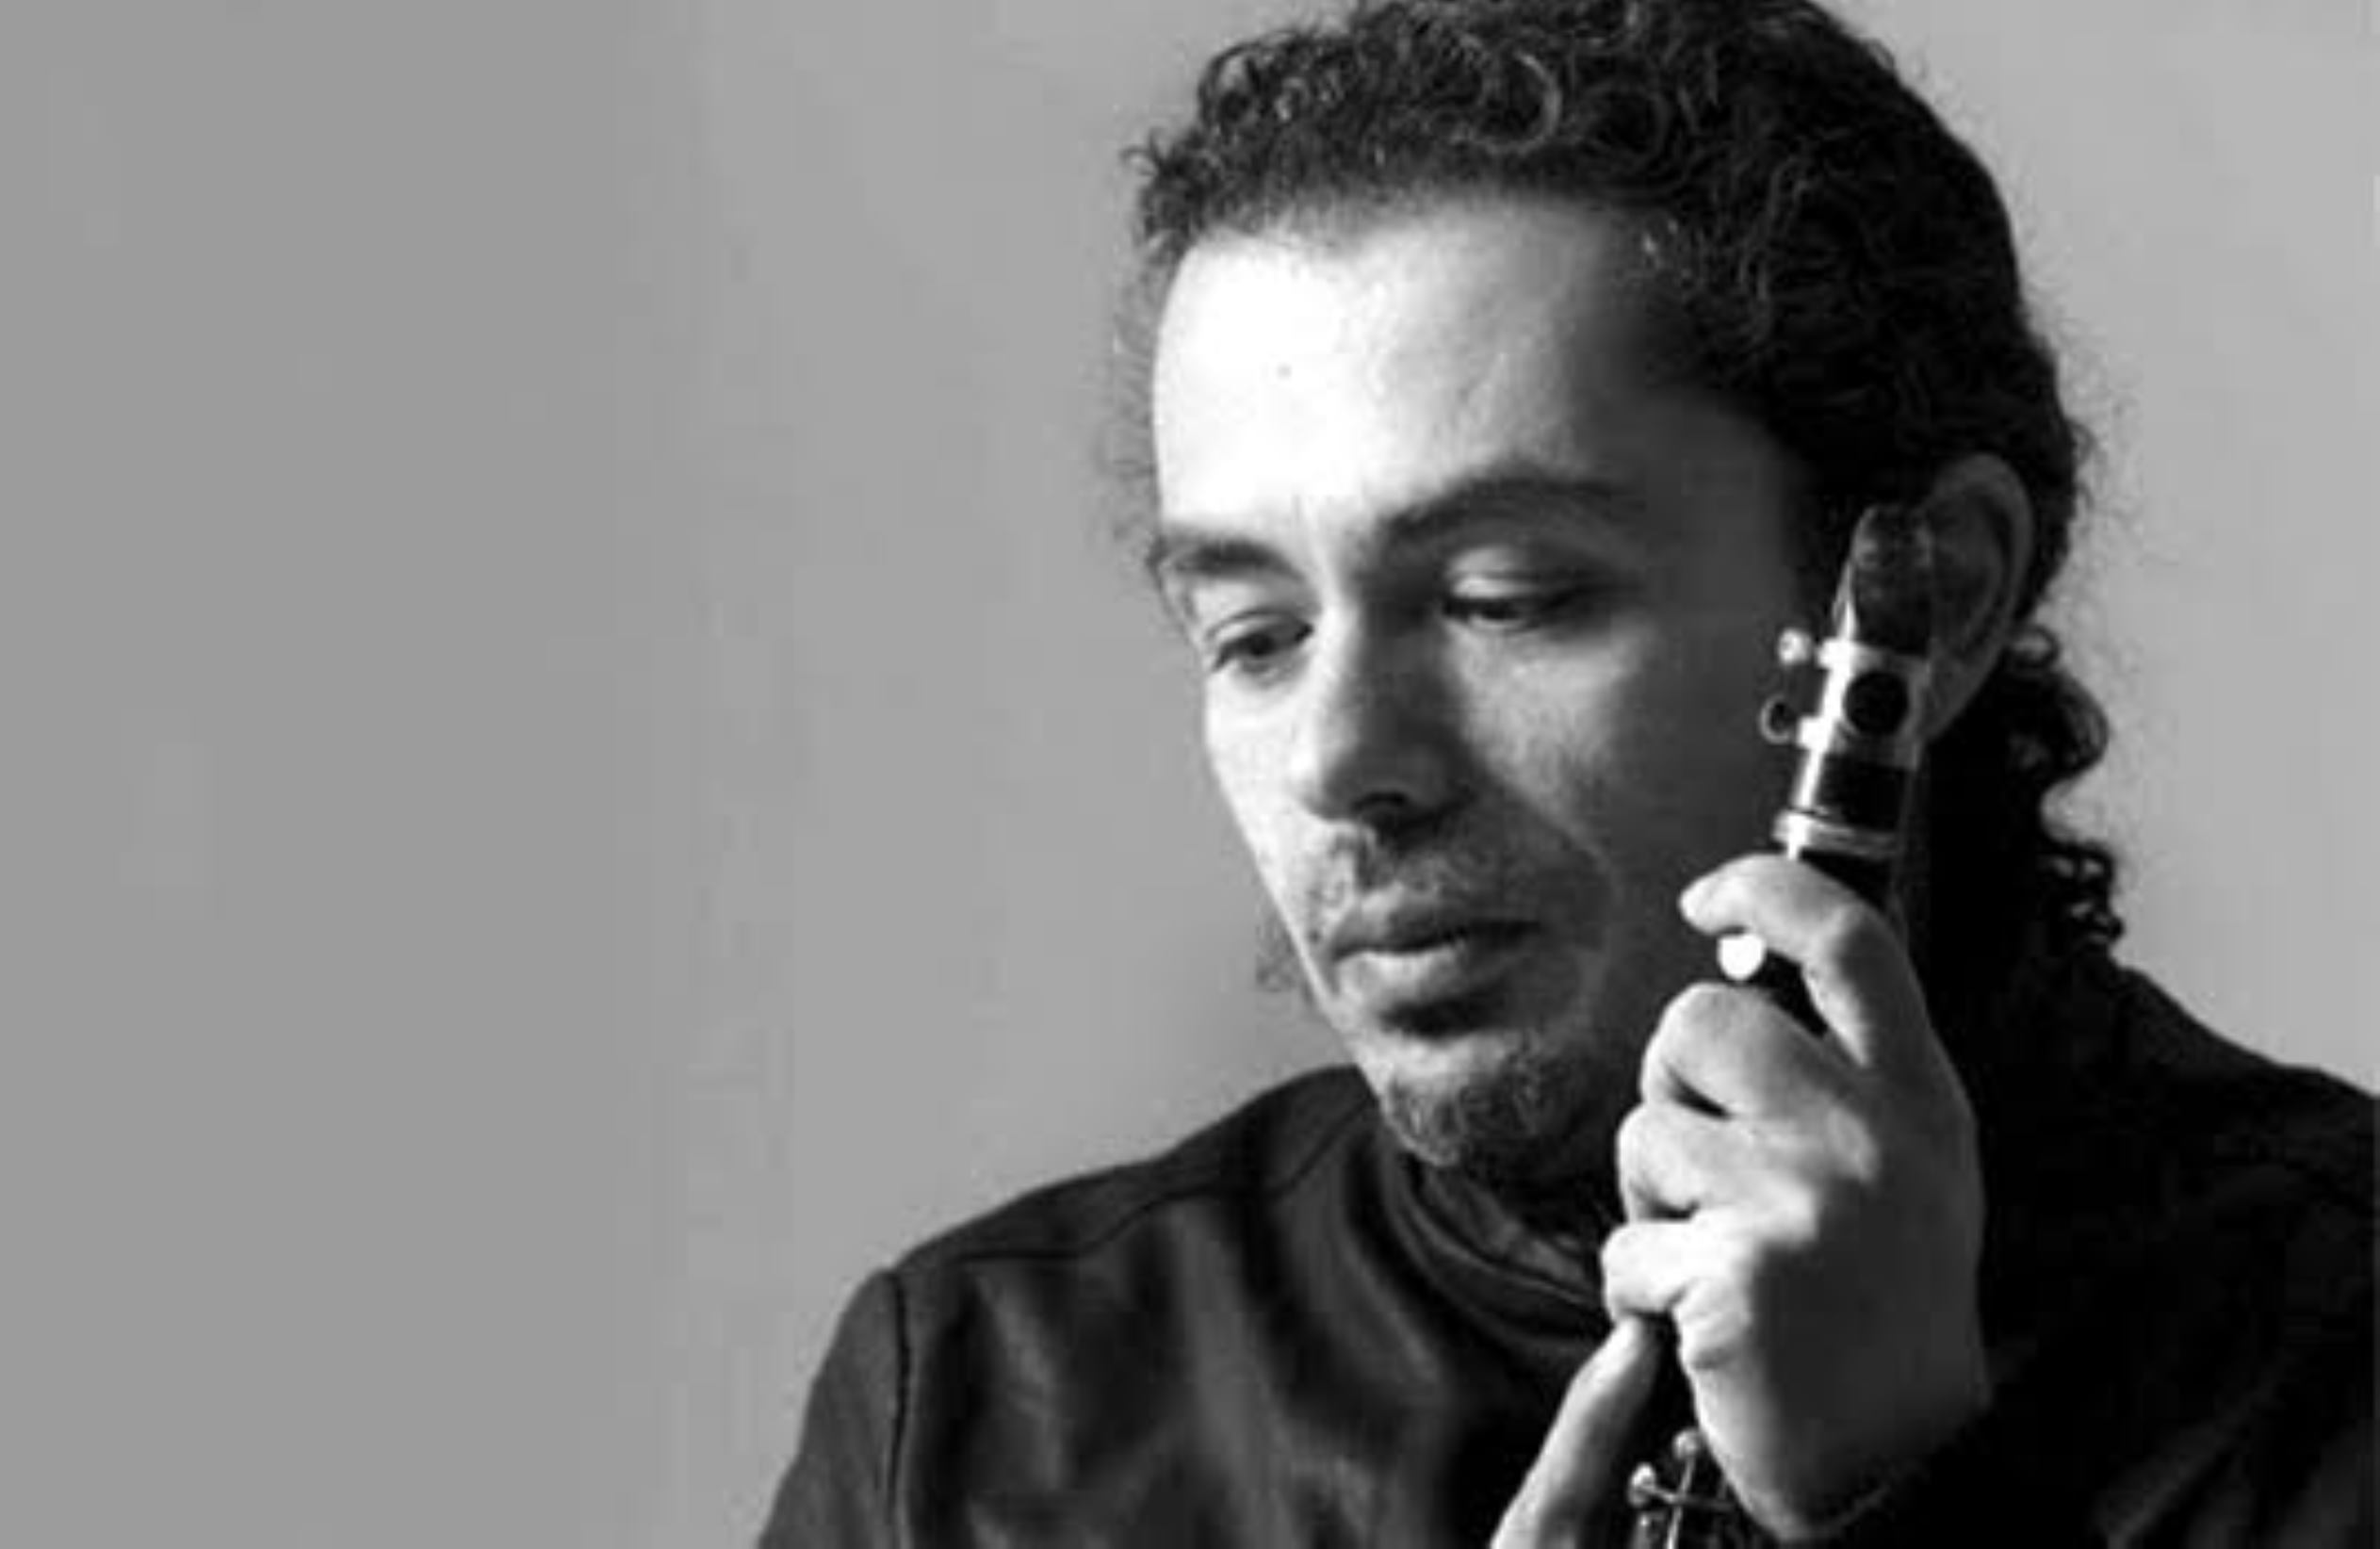 Manos Achalinotopoulos: Greek, Balkan music & clarinet / 2nd